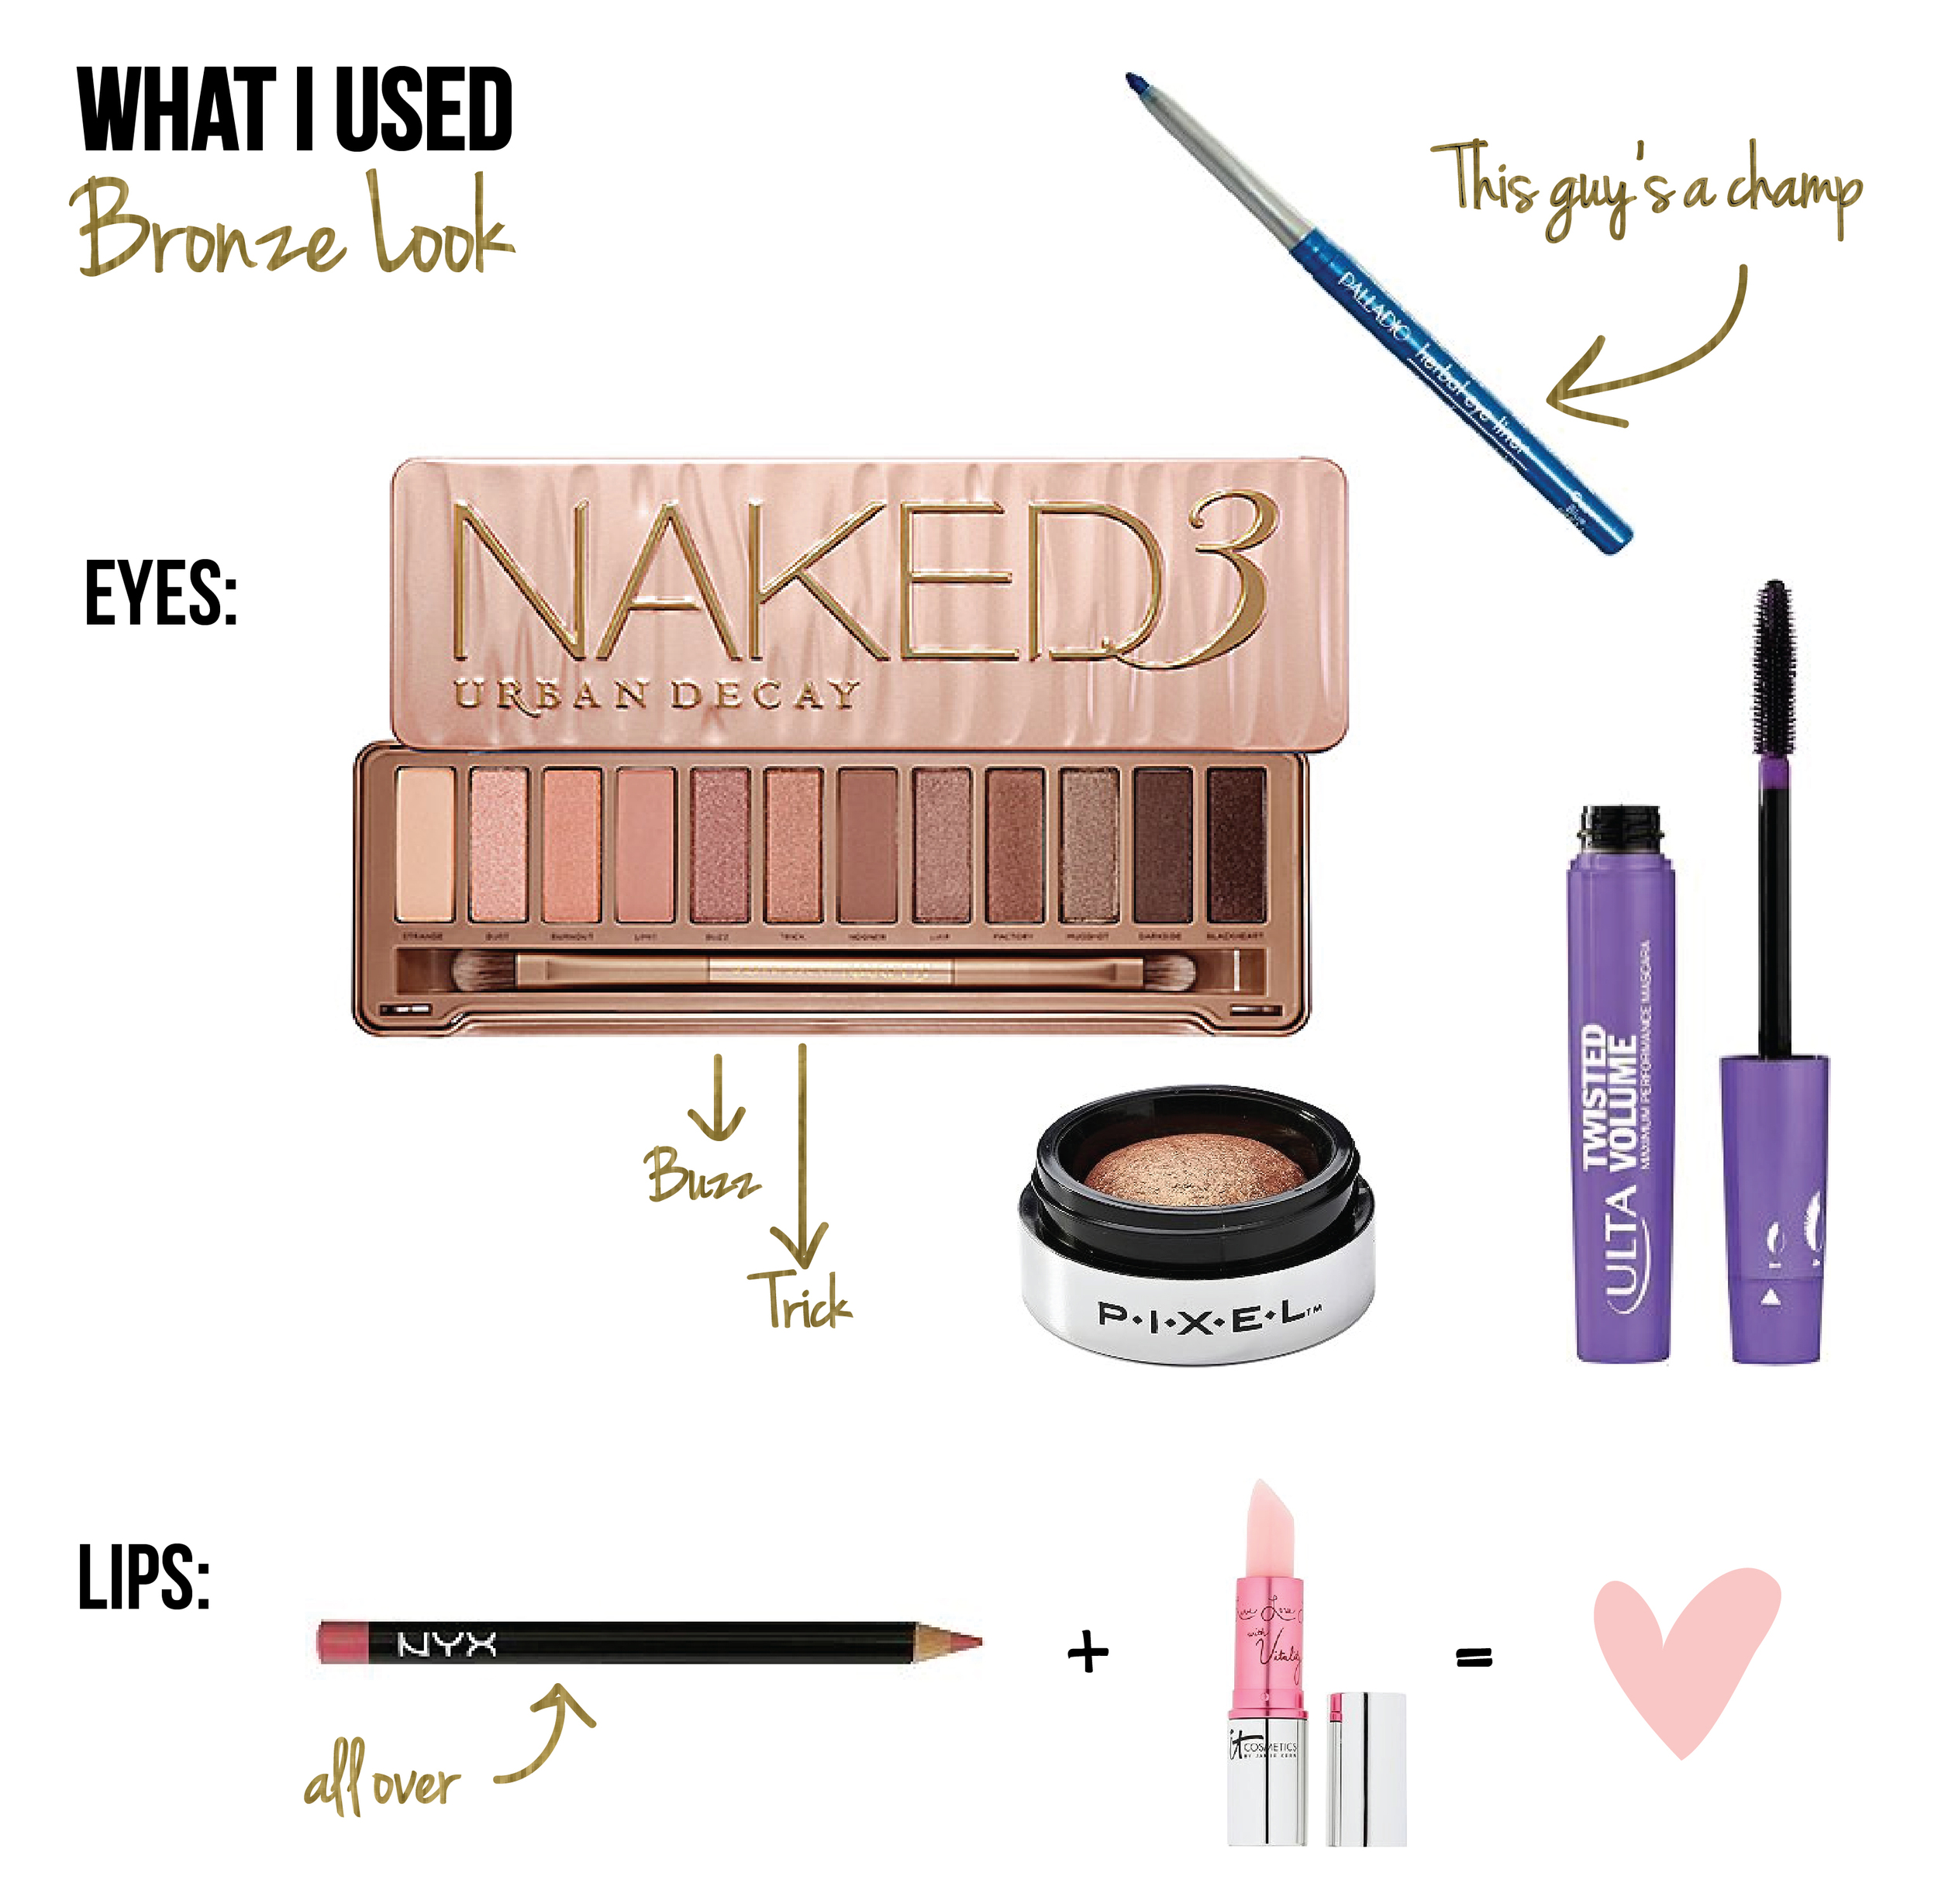 Eyes: Urban Decay Naked3 Palette (mostly Buzz & Trick with Dust around tear duct) •  Palladio Waterproof Liner  in Ocean Blue •  Pixel Baked Eyeshadow  in Gleaming •  ULTA Twisted Volume Mascara  in Black  Lips:  NYX Slim Lip Pencil  in Rose •  It Cosmetics Vitality Lip Flush  in Je Na Sais Quoi